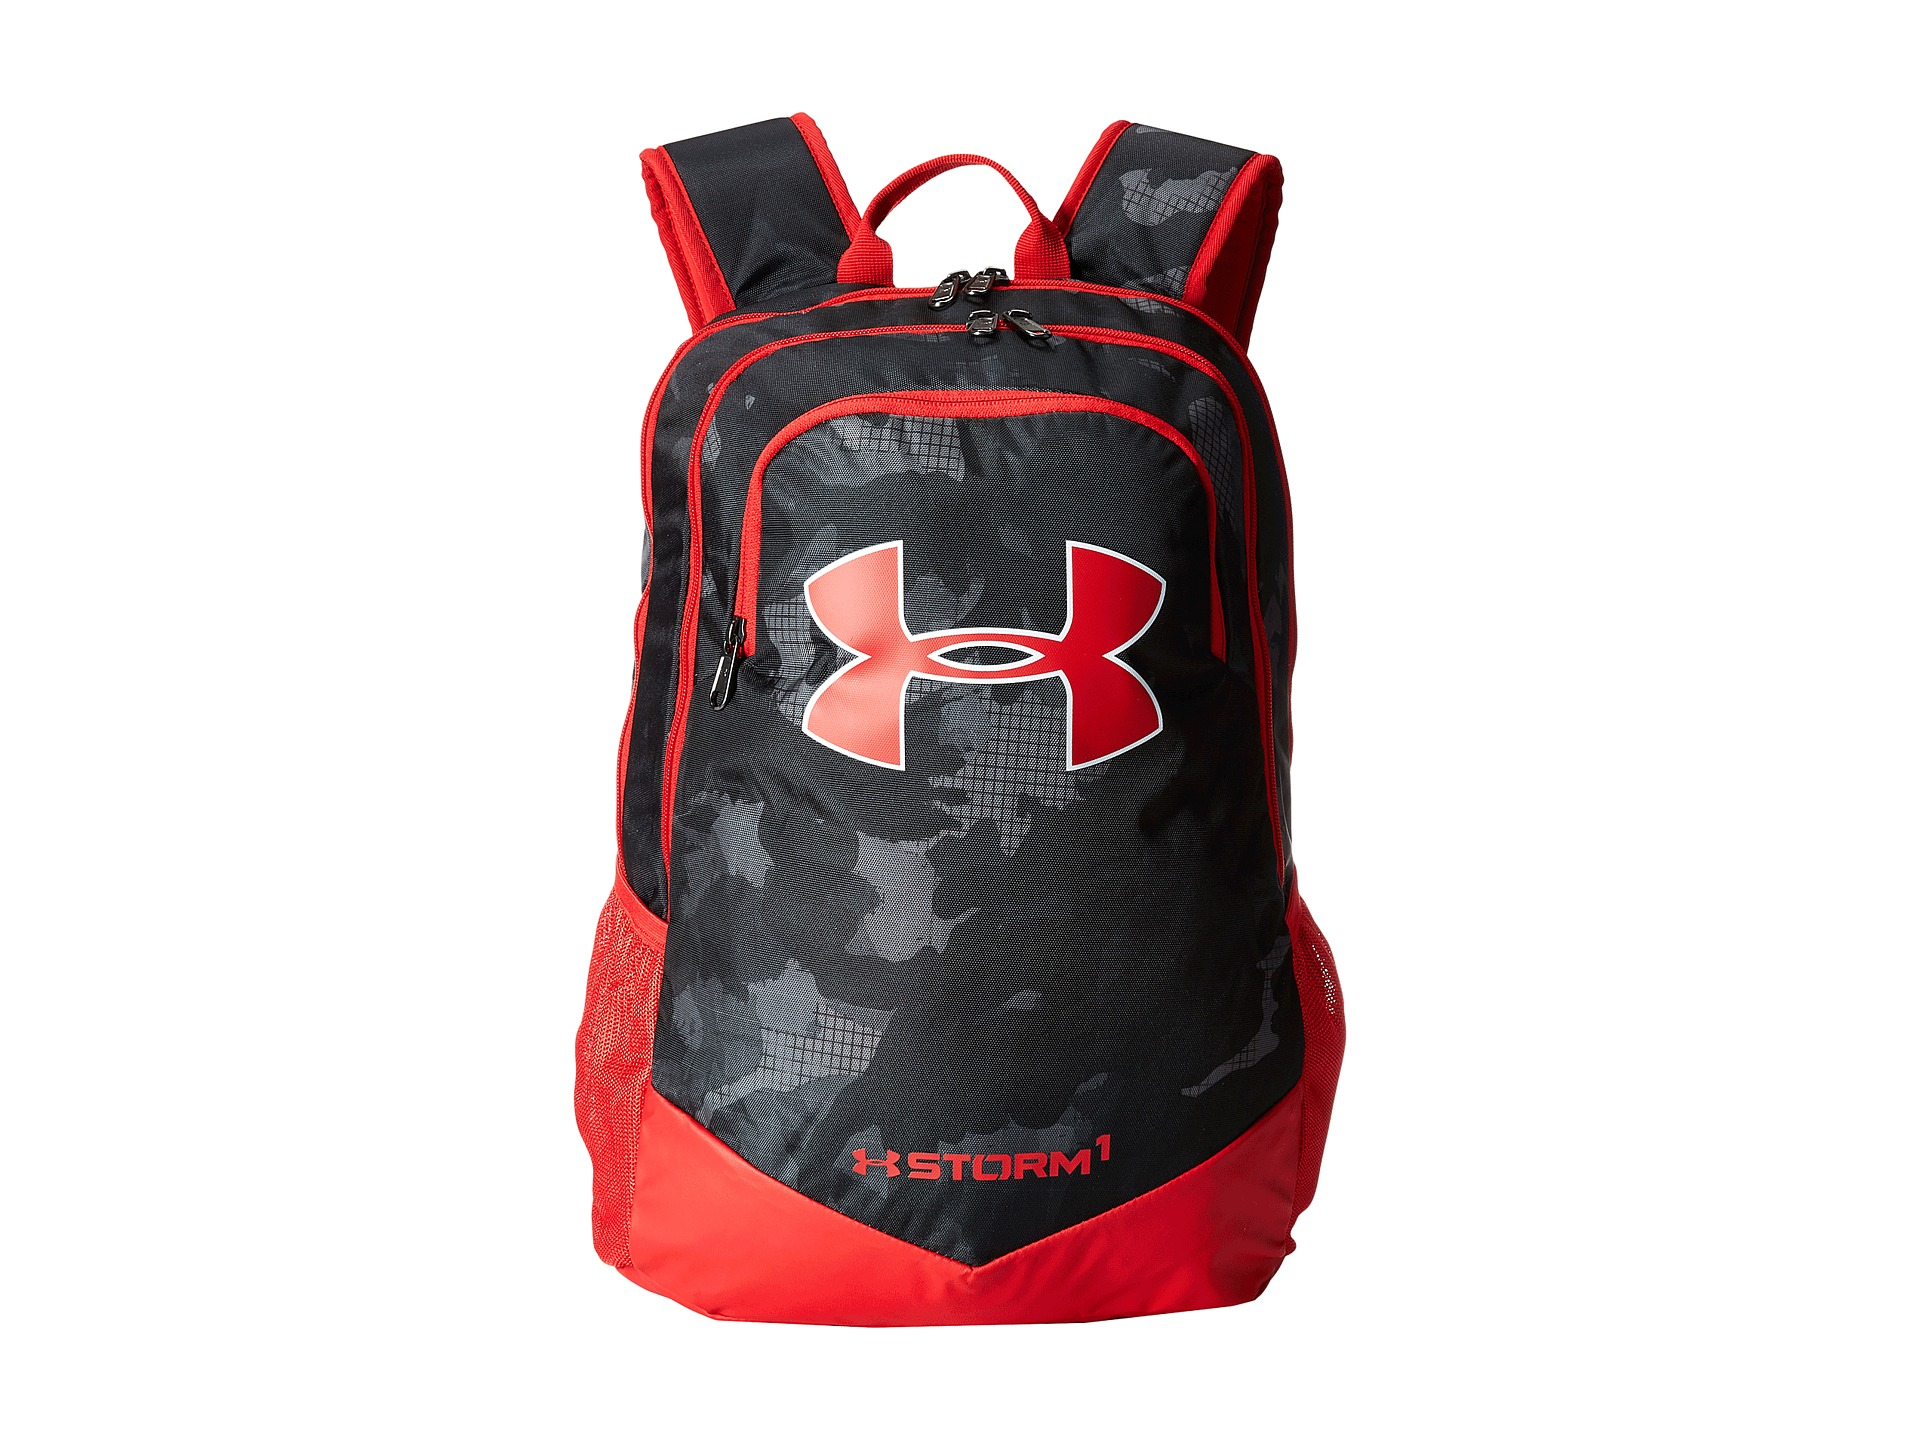 1a36c5de92b0 under armor backpacks on sale cheap   OFF55% The Largest Catalog Discounts